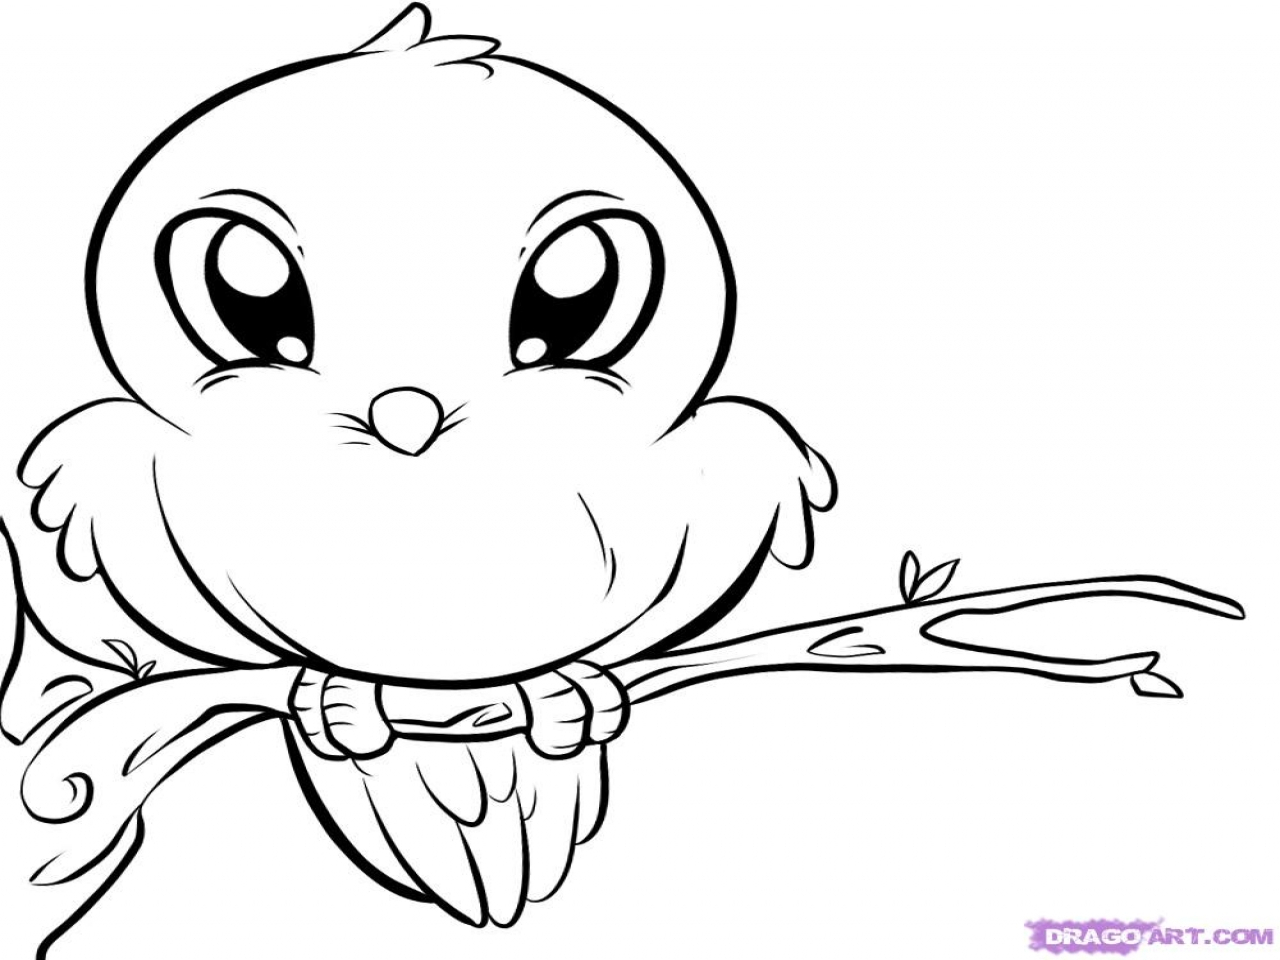 1280x960 Cute Baby Animals To Draw Step By Step Cute Animal Drawings Free